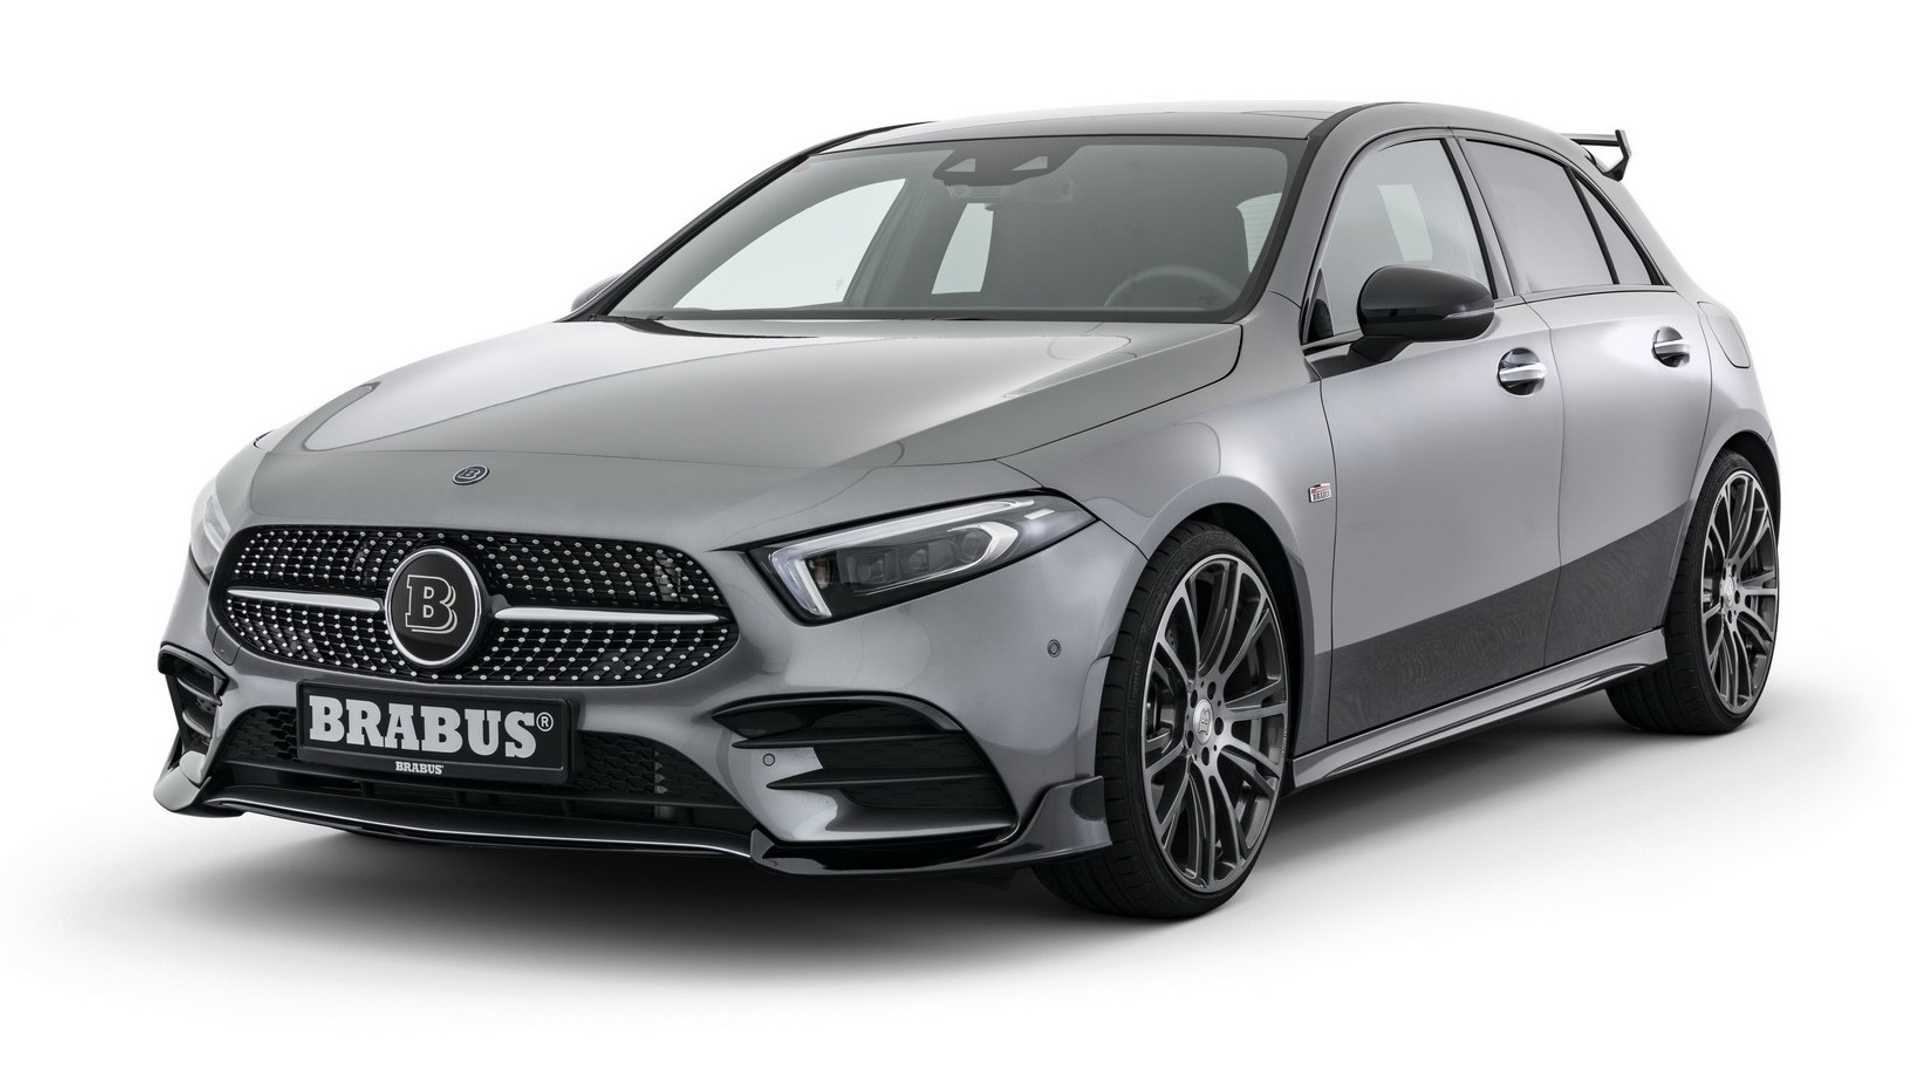 46 New A250 Mercedes 2020 Specs and Review for A250 Mercedes 2020